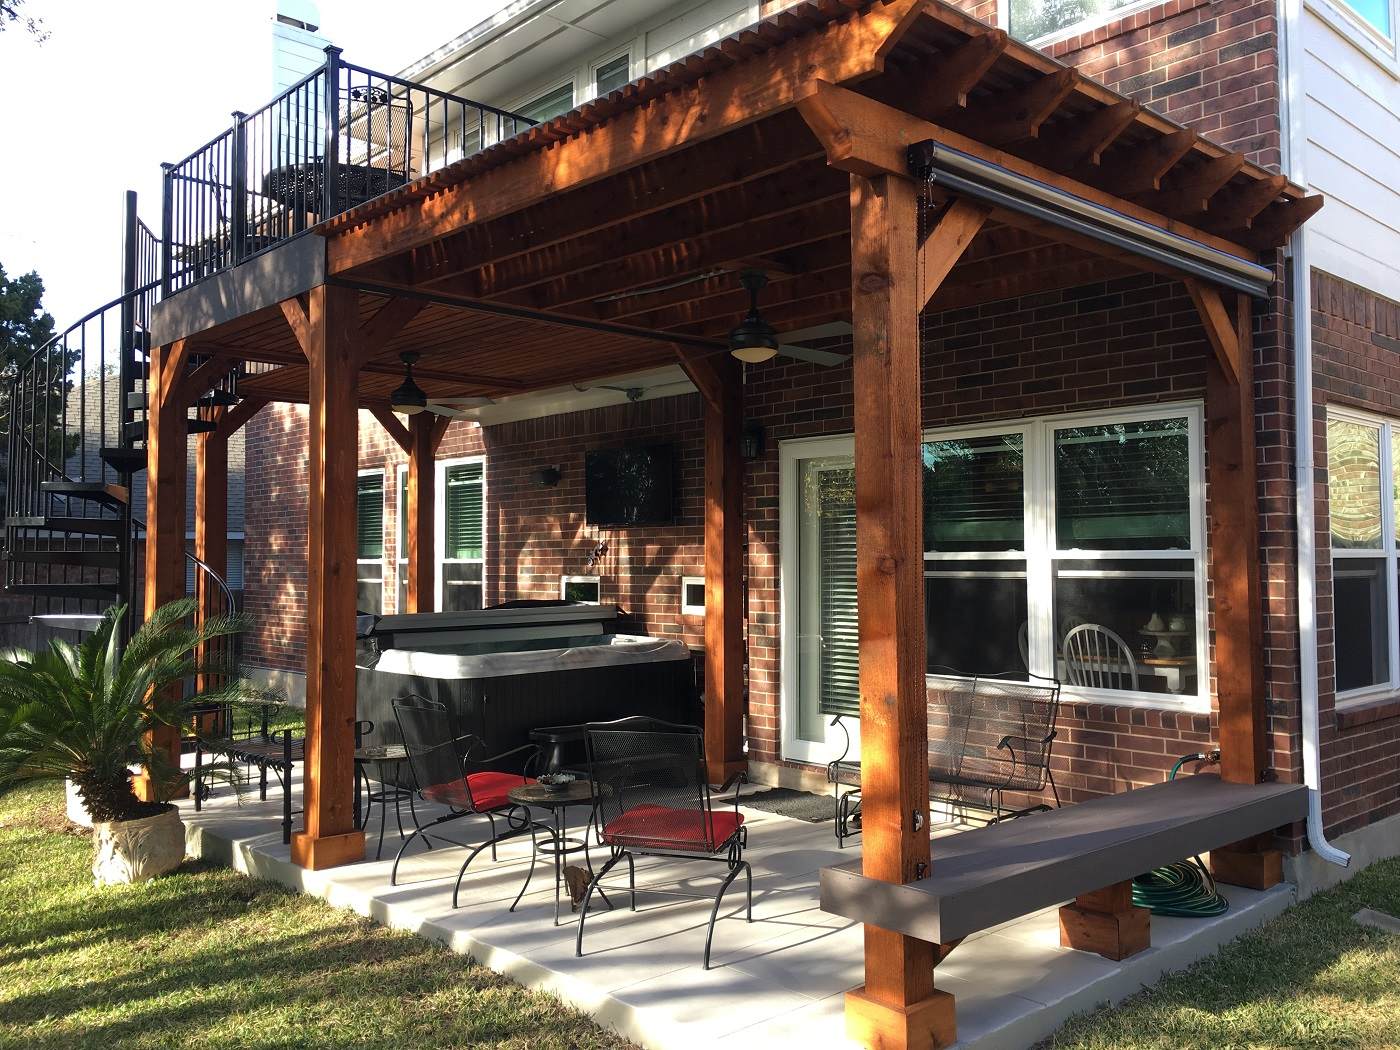 Austin Second Story Deck with Spiral Staircase | Austin Decks, Pergolas,  Covered Patios, Porches, more - Austin Second Story Deck With Spiral Staircase Austin Decks